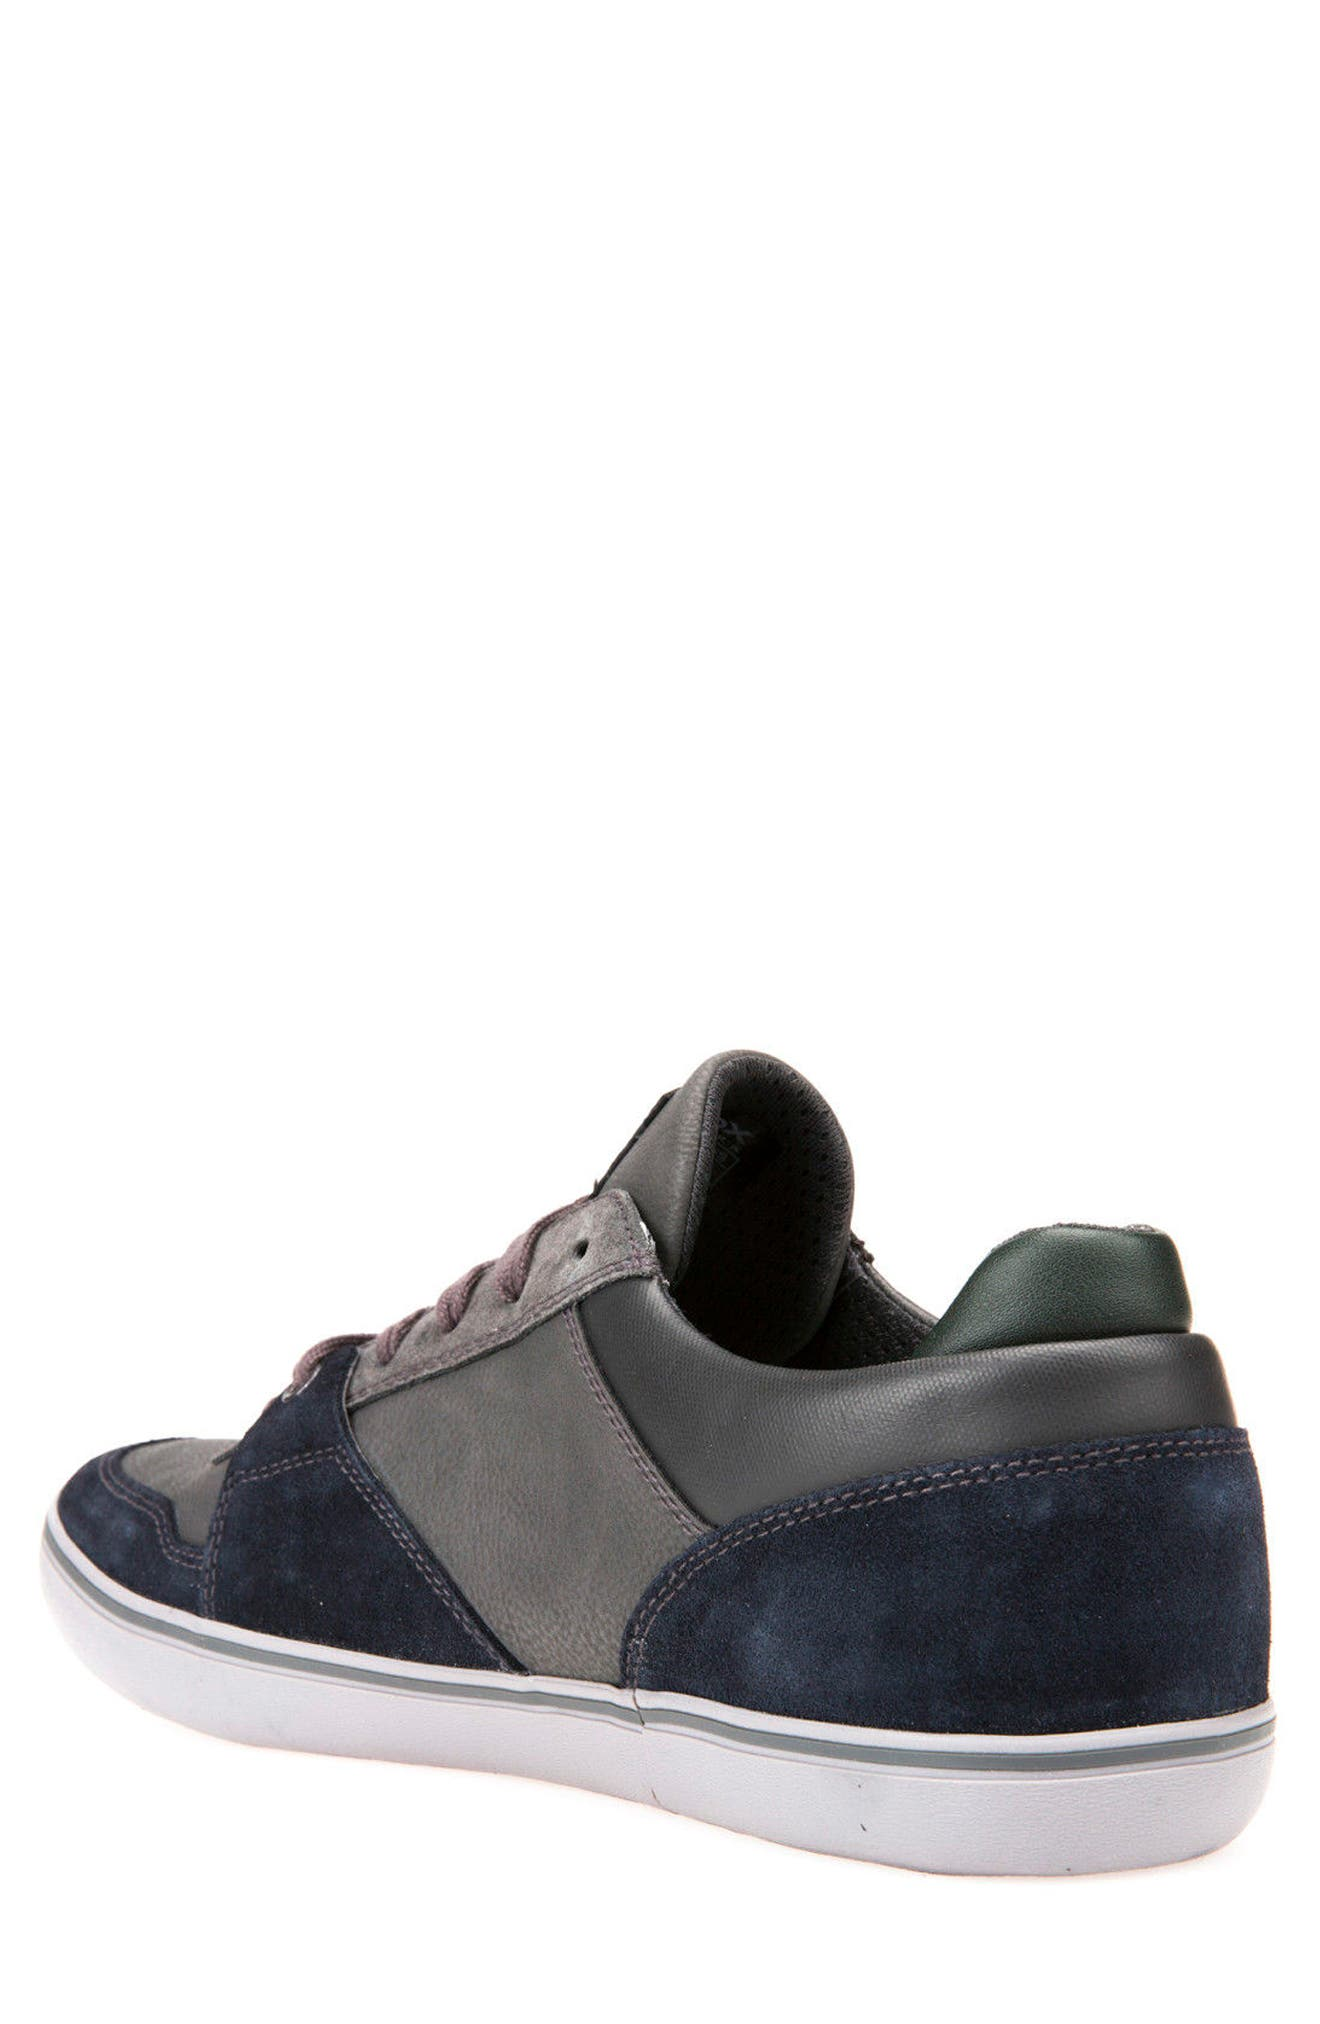 Box 26 Low Top Sneaker,                             Alternate thumbnail 2, color,                             Navy/ Anthracite